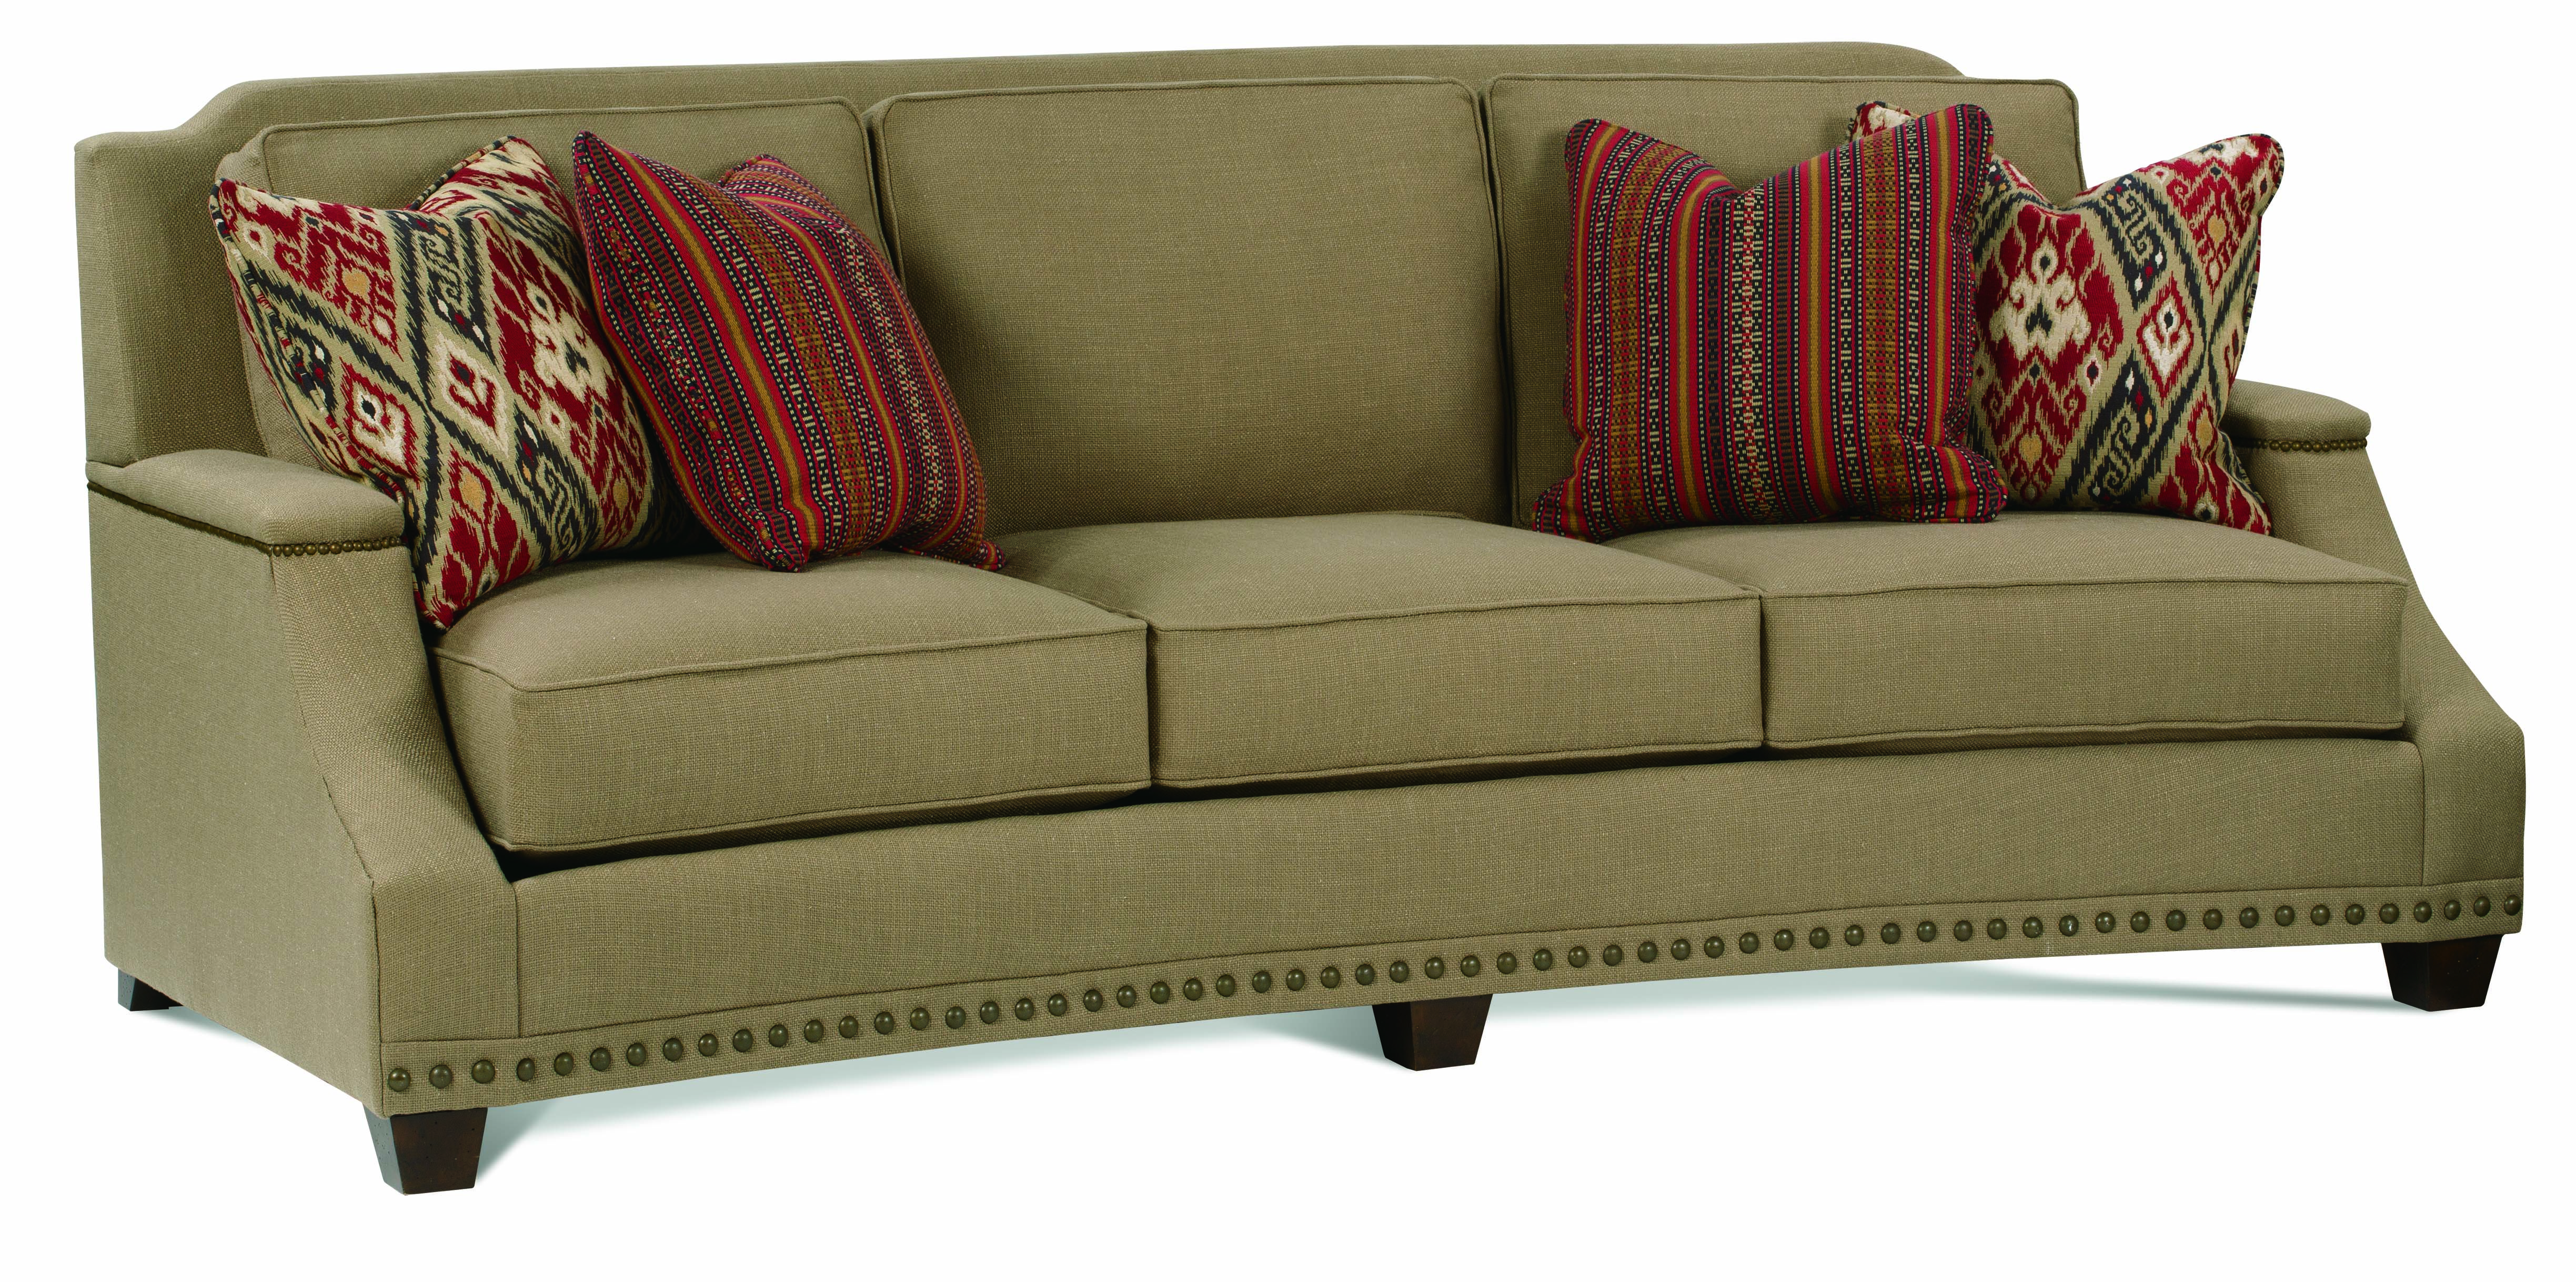 clayton marcus sleeper sofa reviews lazy boy james 3 seater leather review home co